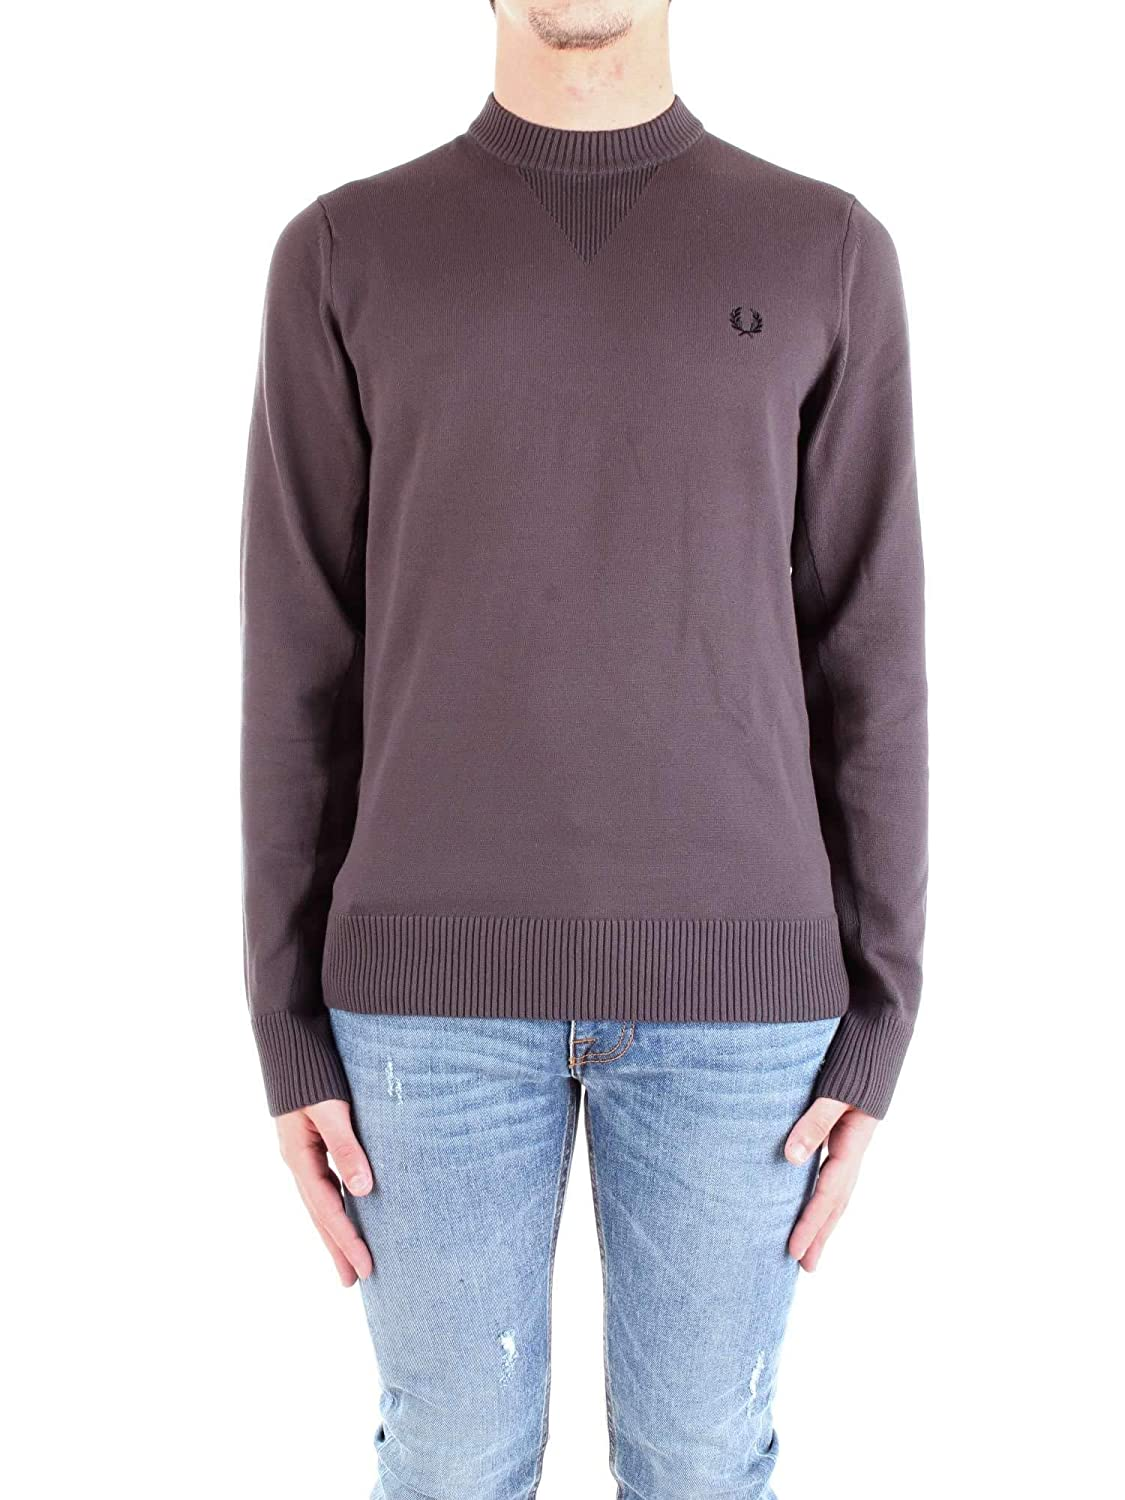 7335f0e24 Fred Perry K5503 V Insert Crew Neck Jumper Anchor Grey  Amazon.co.uk   Clothing